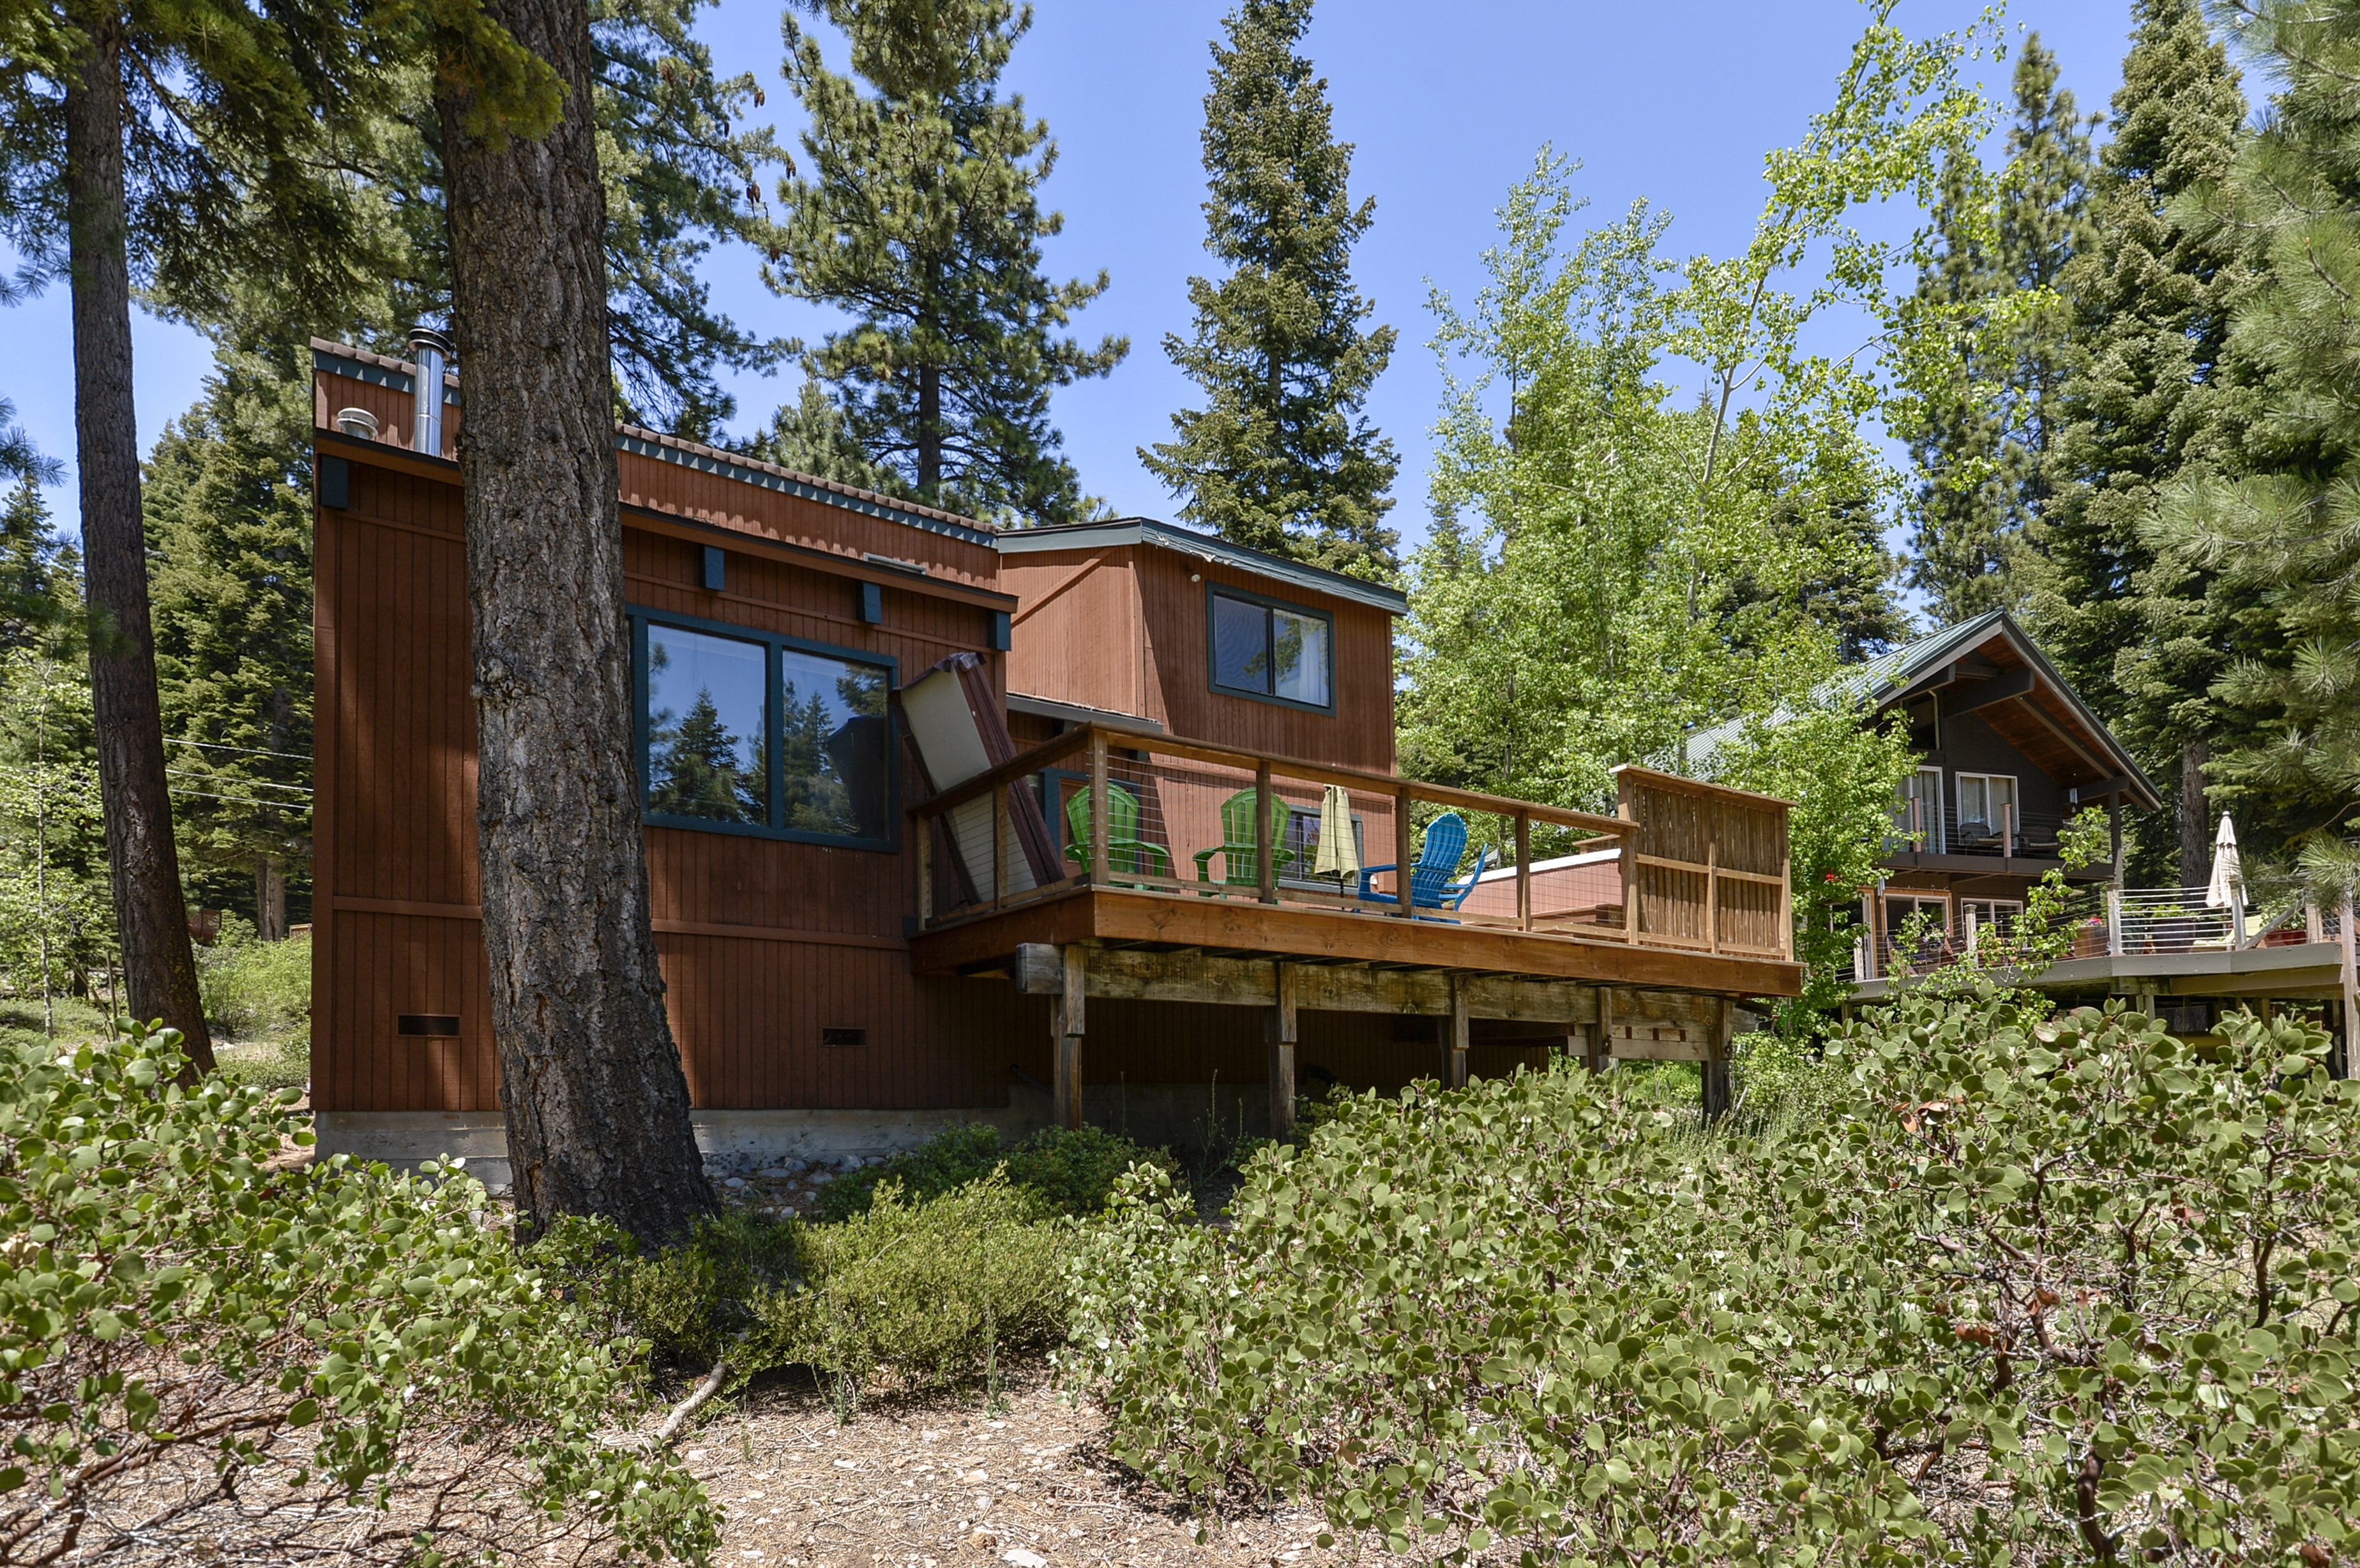 Lake Tahoe vacation home rental with 3 bedrooms in Carnelian Bay